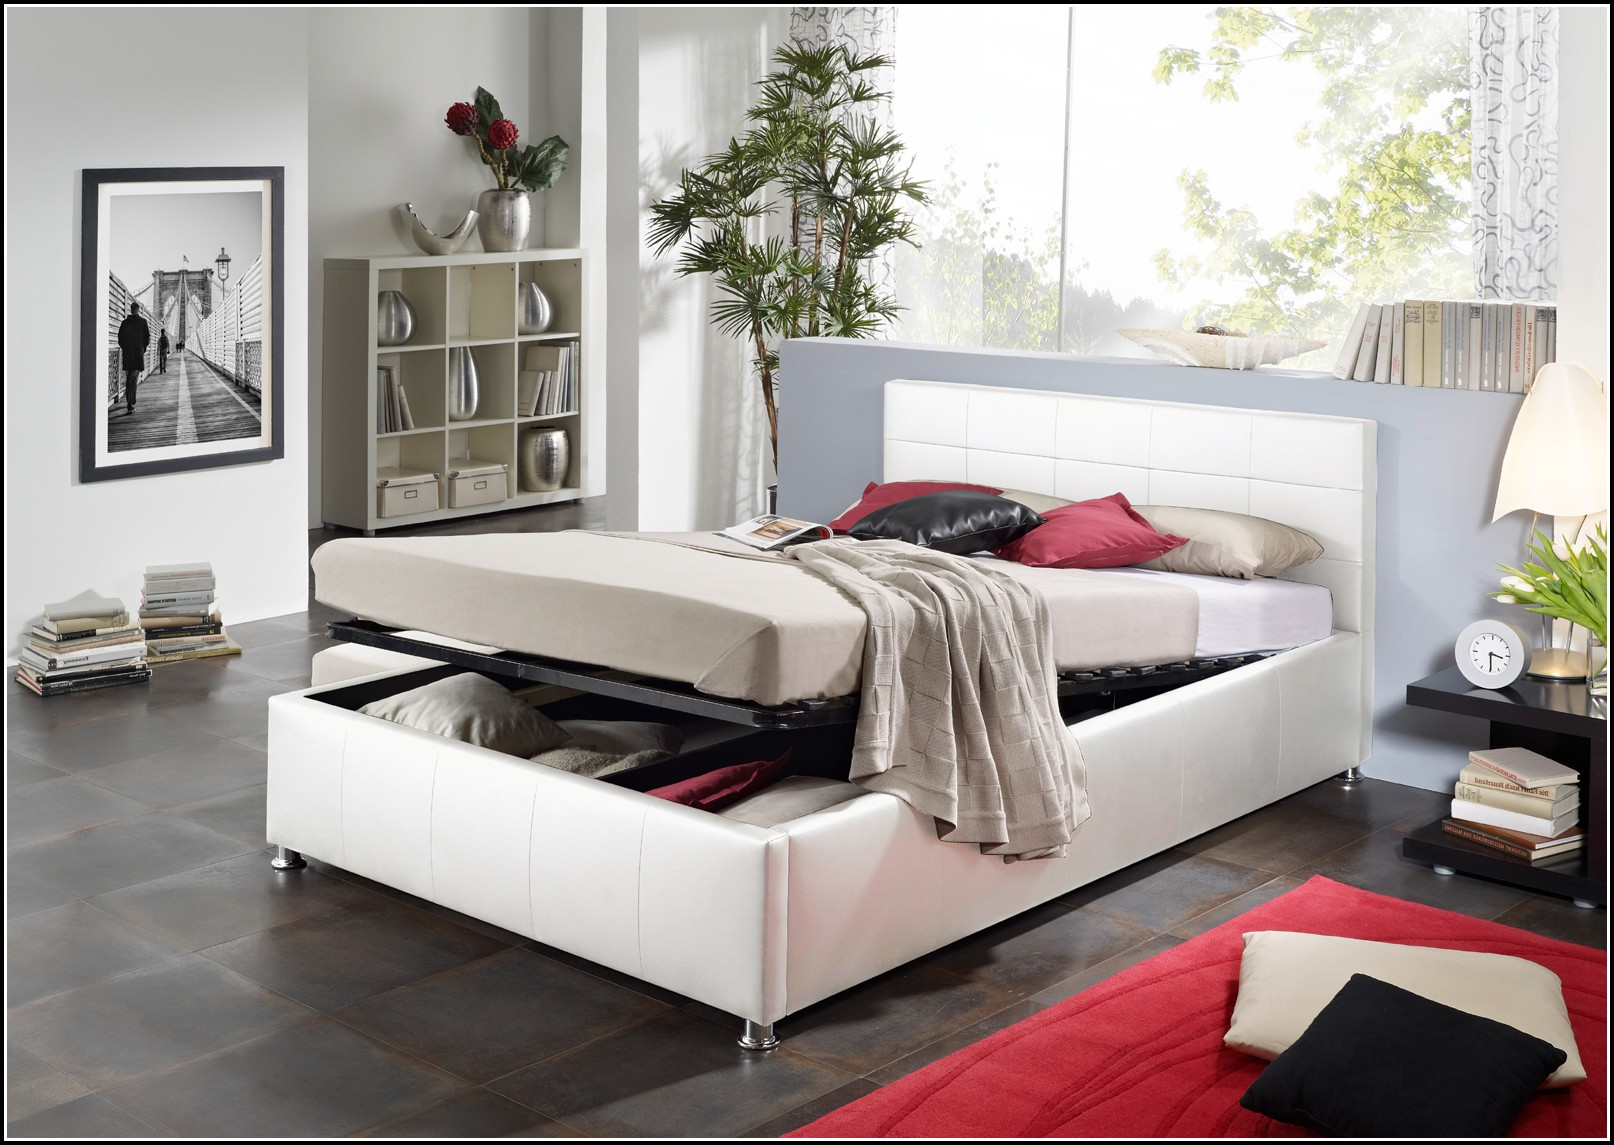 bett mit bettkasten 140x200 betten house und dekor. Black Bedroom Furniture Sets. Home Design Ideas